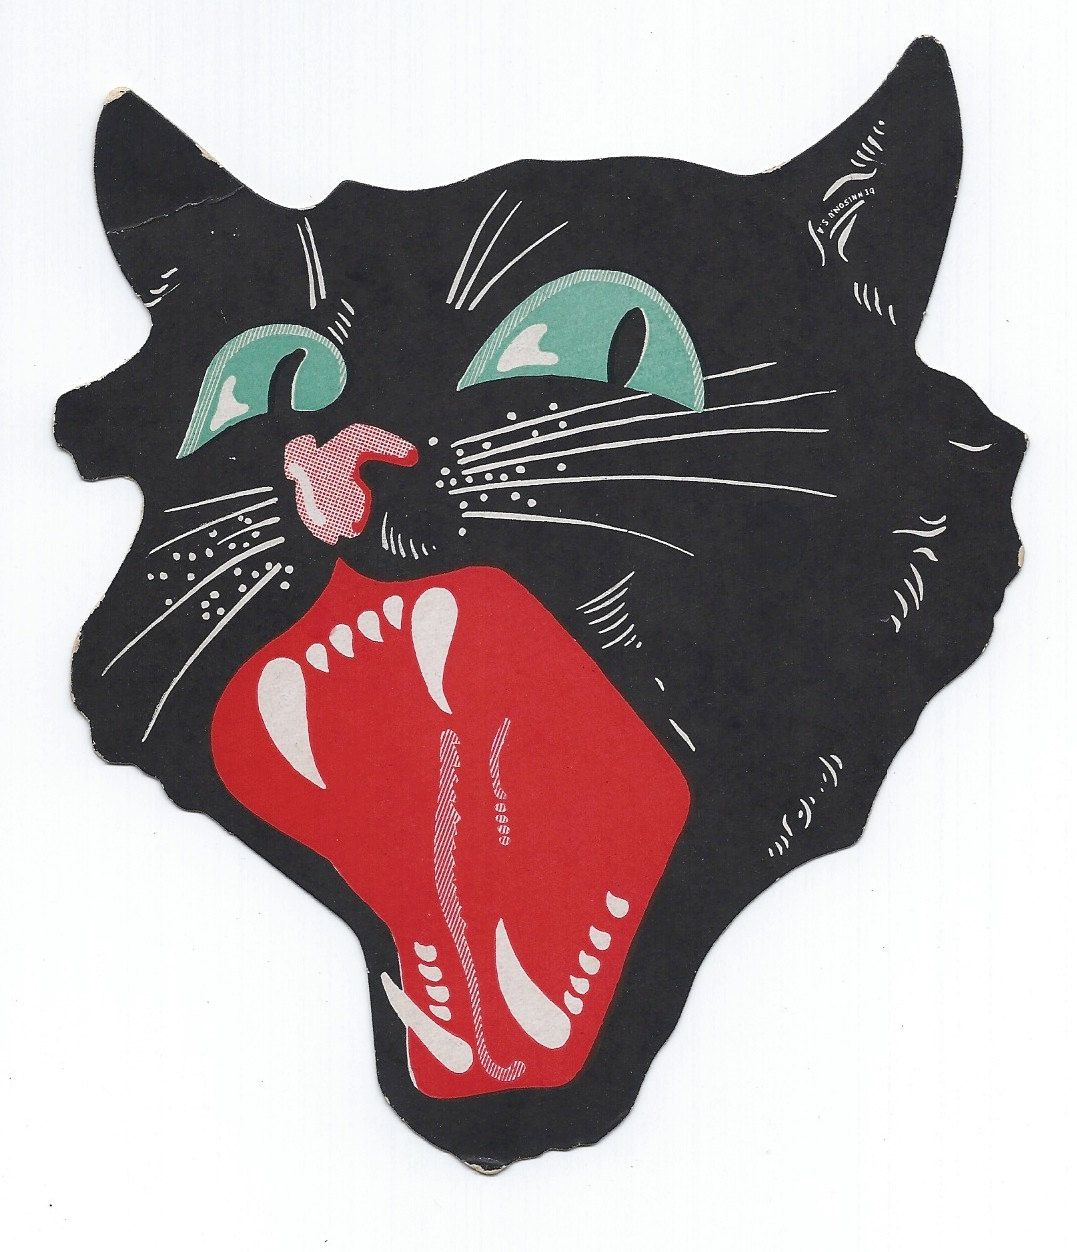 Vintage beistle halloween decorations - Vintage Halloween Dennison Snarling Black Cat Die Cut 1920s Art Deco Collectible Cut Out Antique Decoration